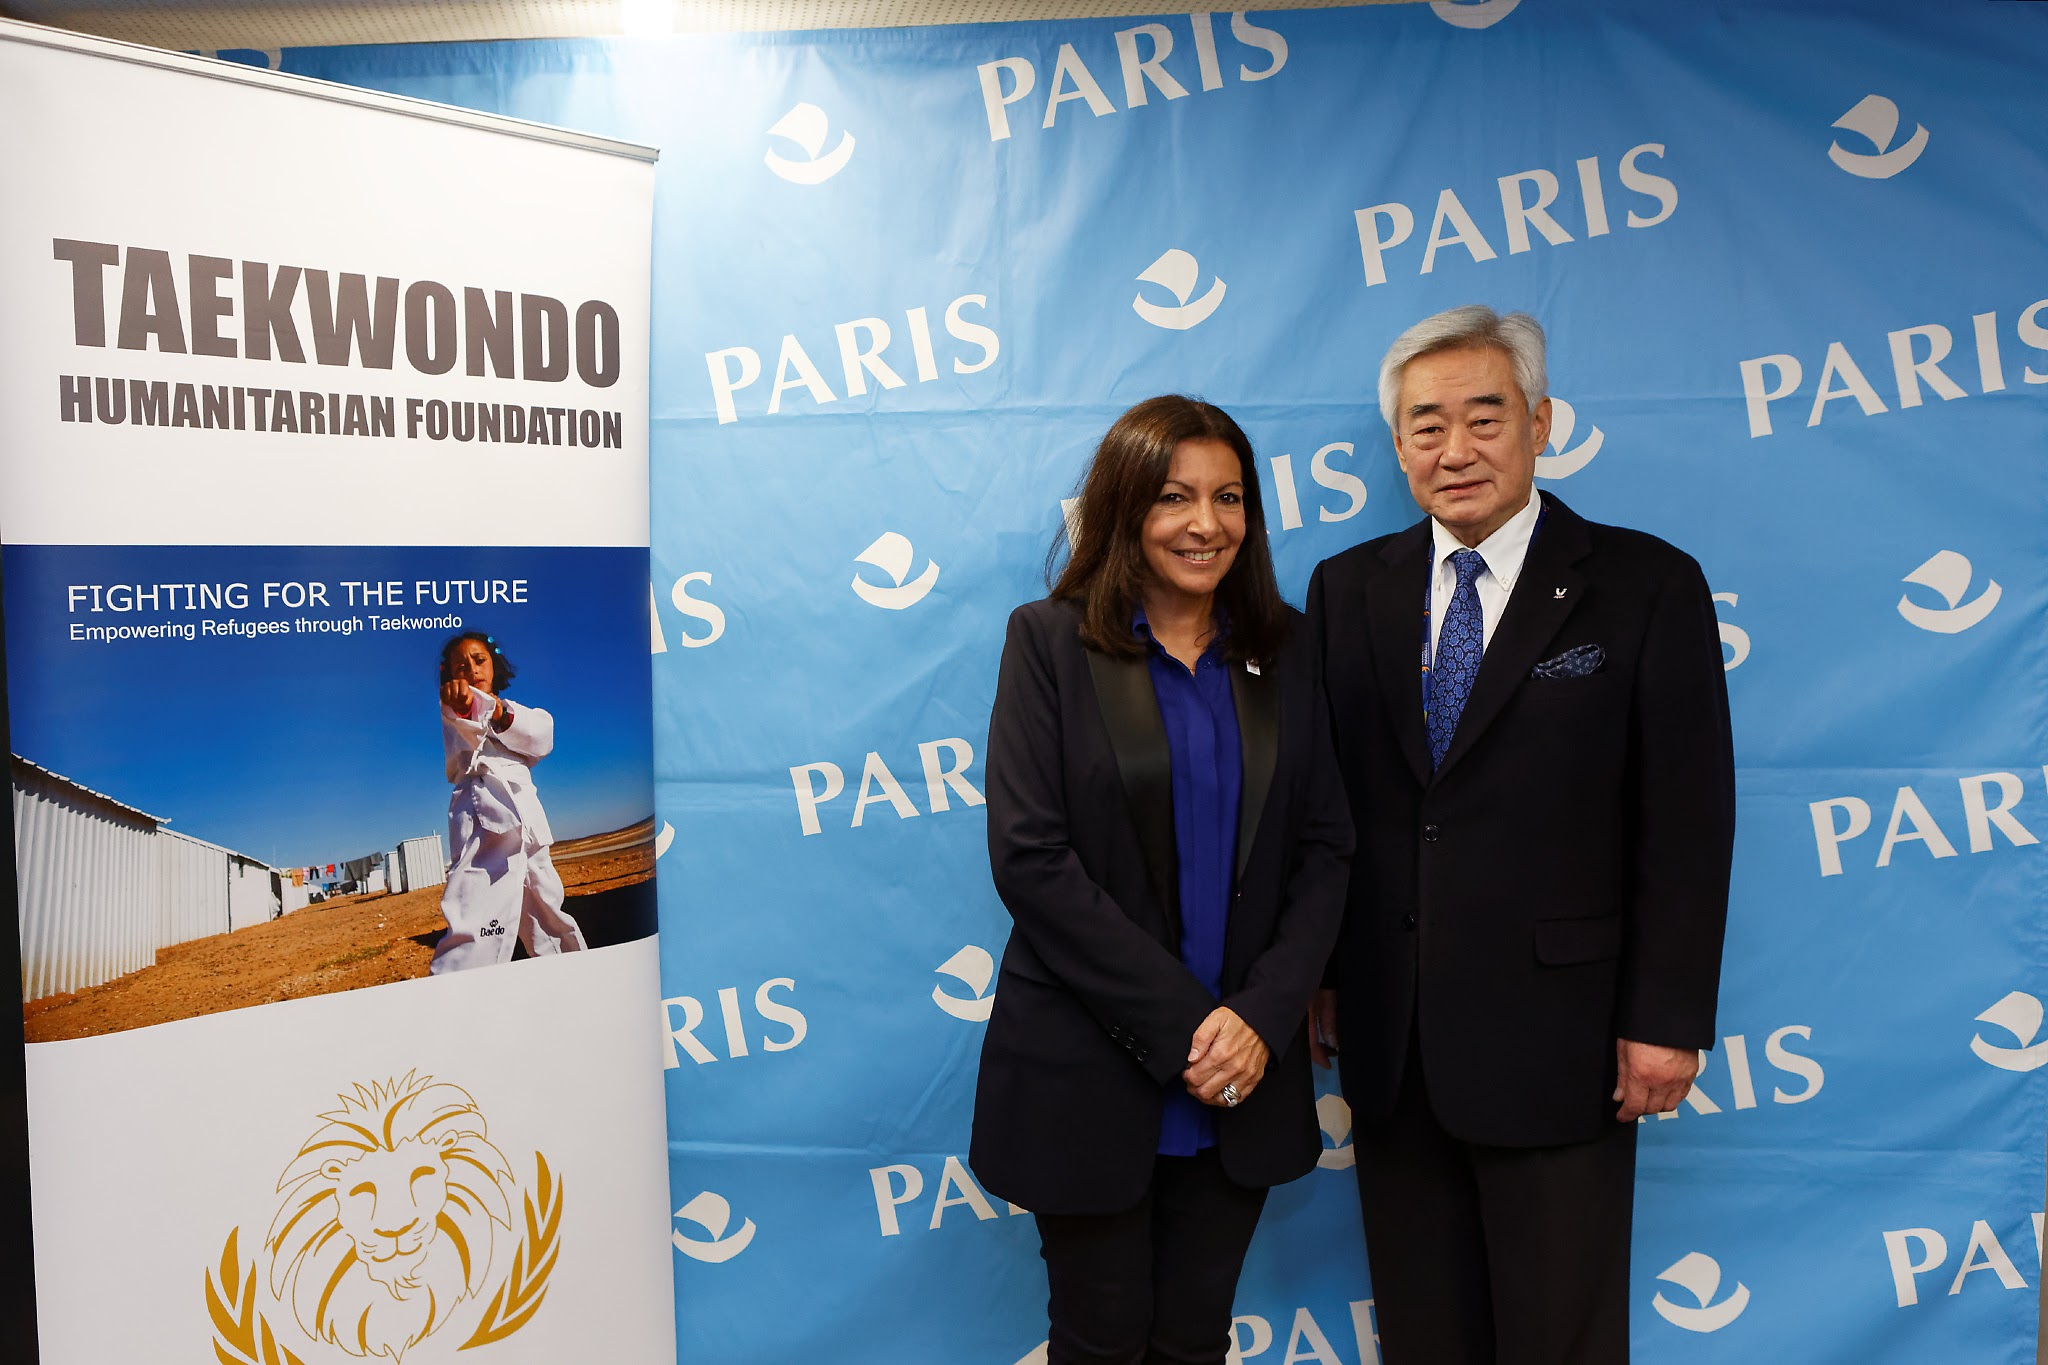 President Choue with Mayor of Paris